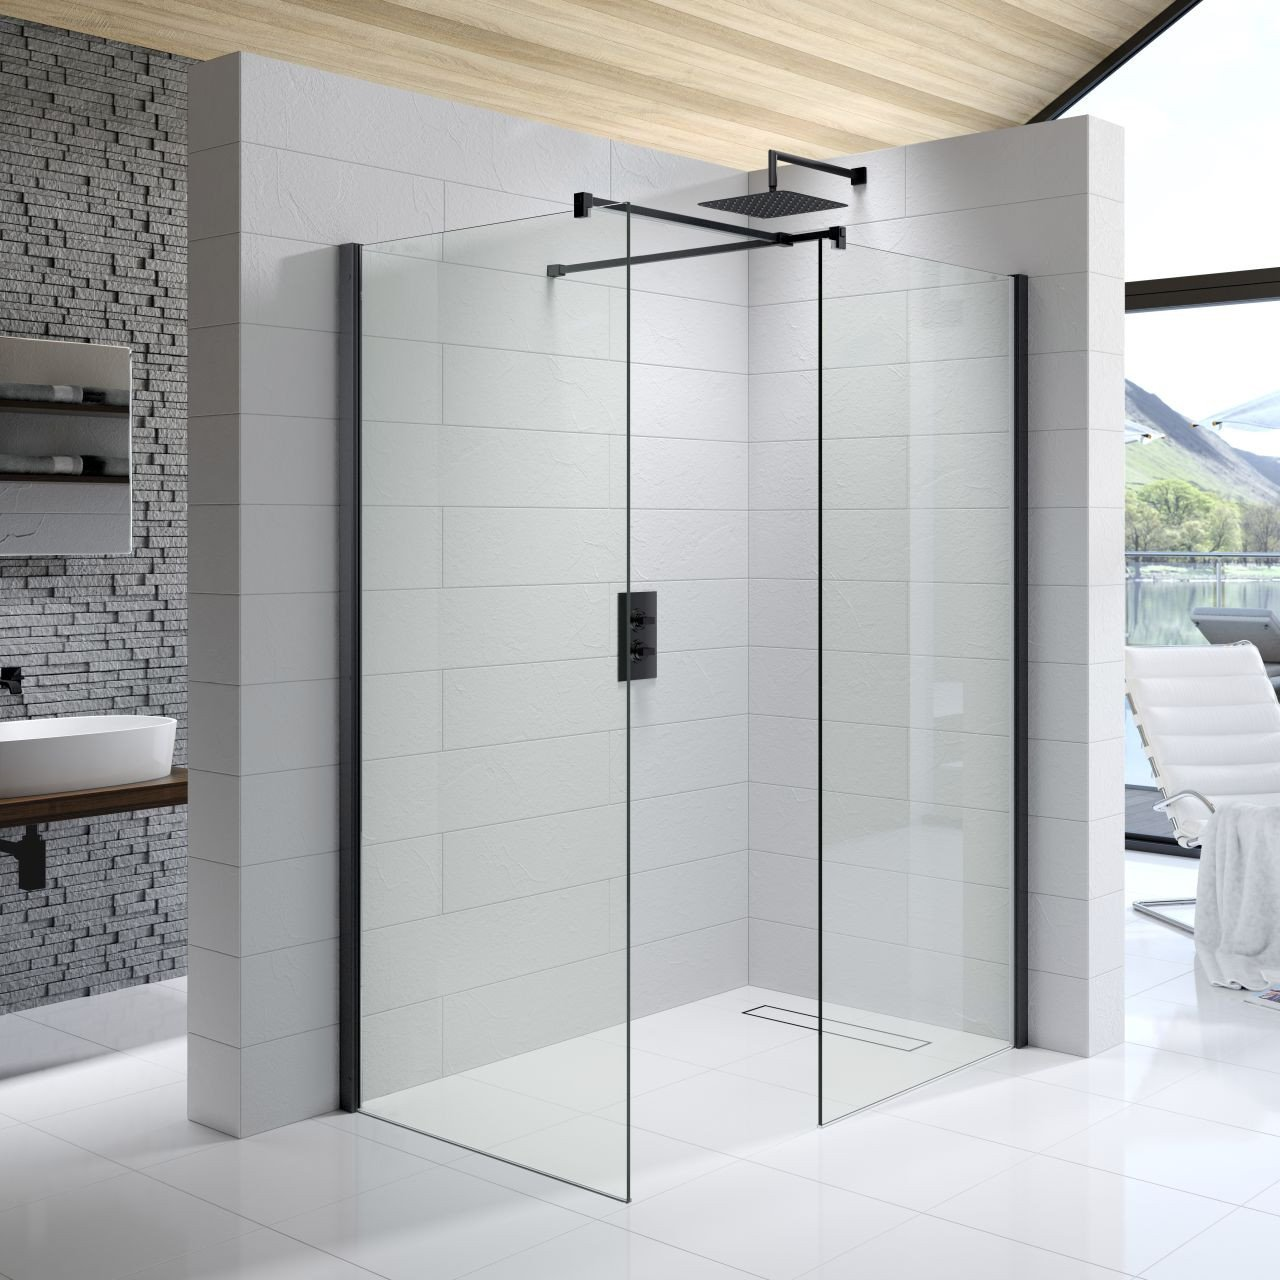 Kudos Ultimate Black 8mm 1400mm x 900mm Complete Corner Walk In Shower Enclosure - U8CP1490MBK